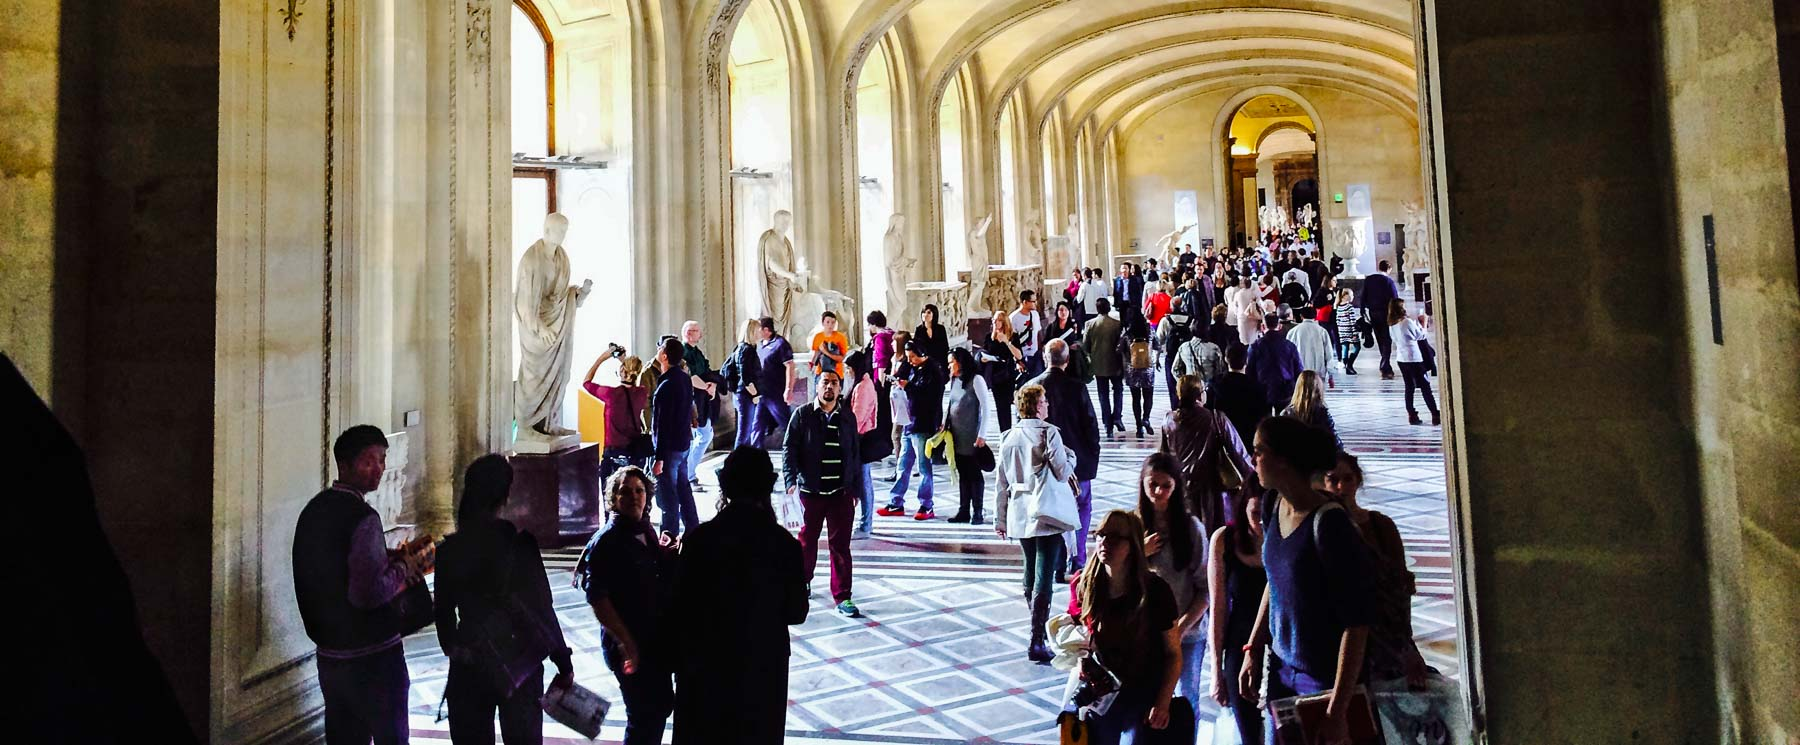 People walking in Louvre hallways.